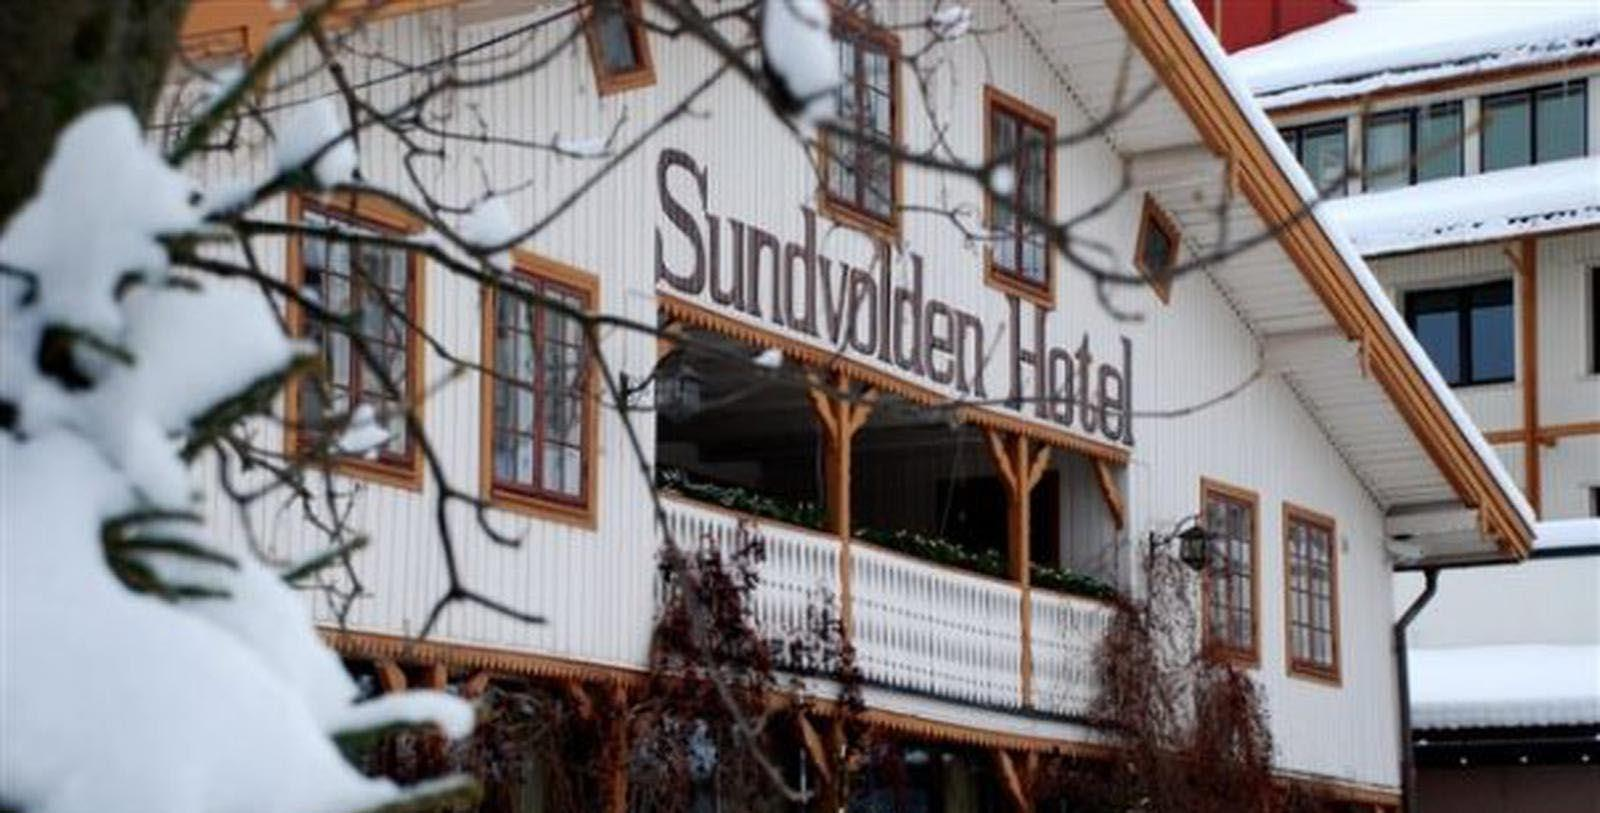 Image of Hotel Exterior Sundvolden Hotel, 1648, Member of Historic Hotels Worldwide, in Krokkleiva, Norway, Special Offers, Discounted Rates, Families, Romantic Escape, Honeymoons, Anniversaries, Reunions